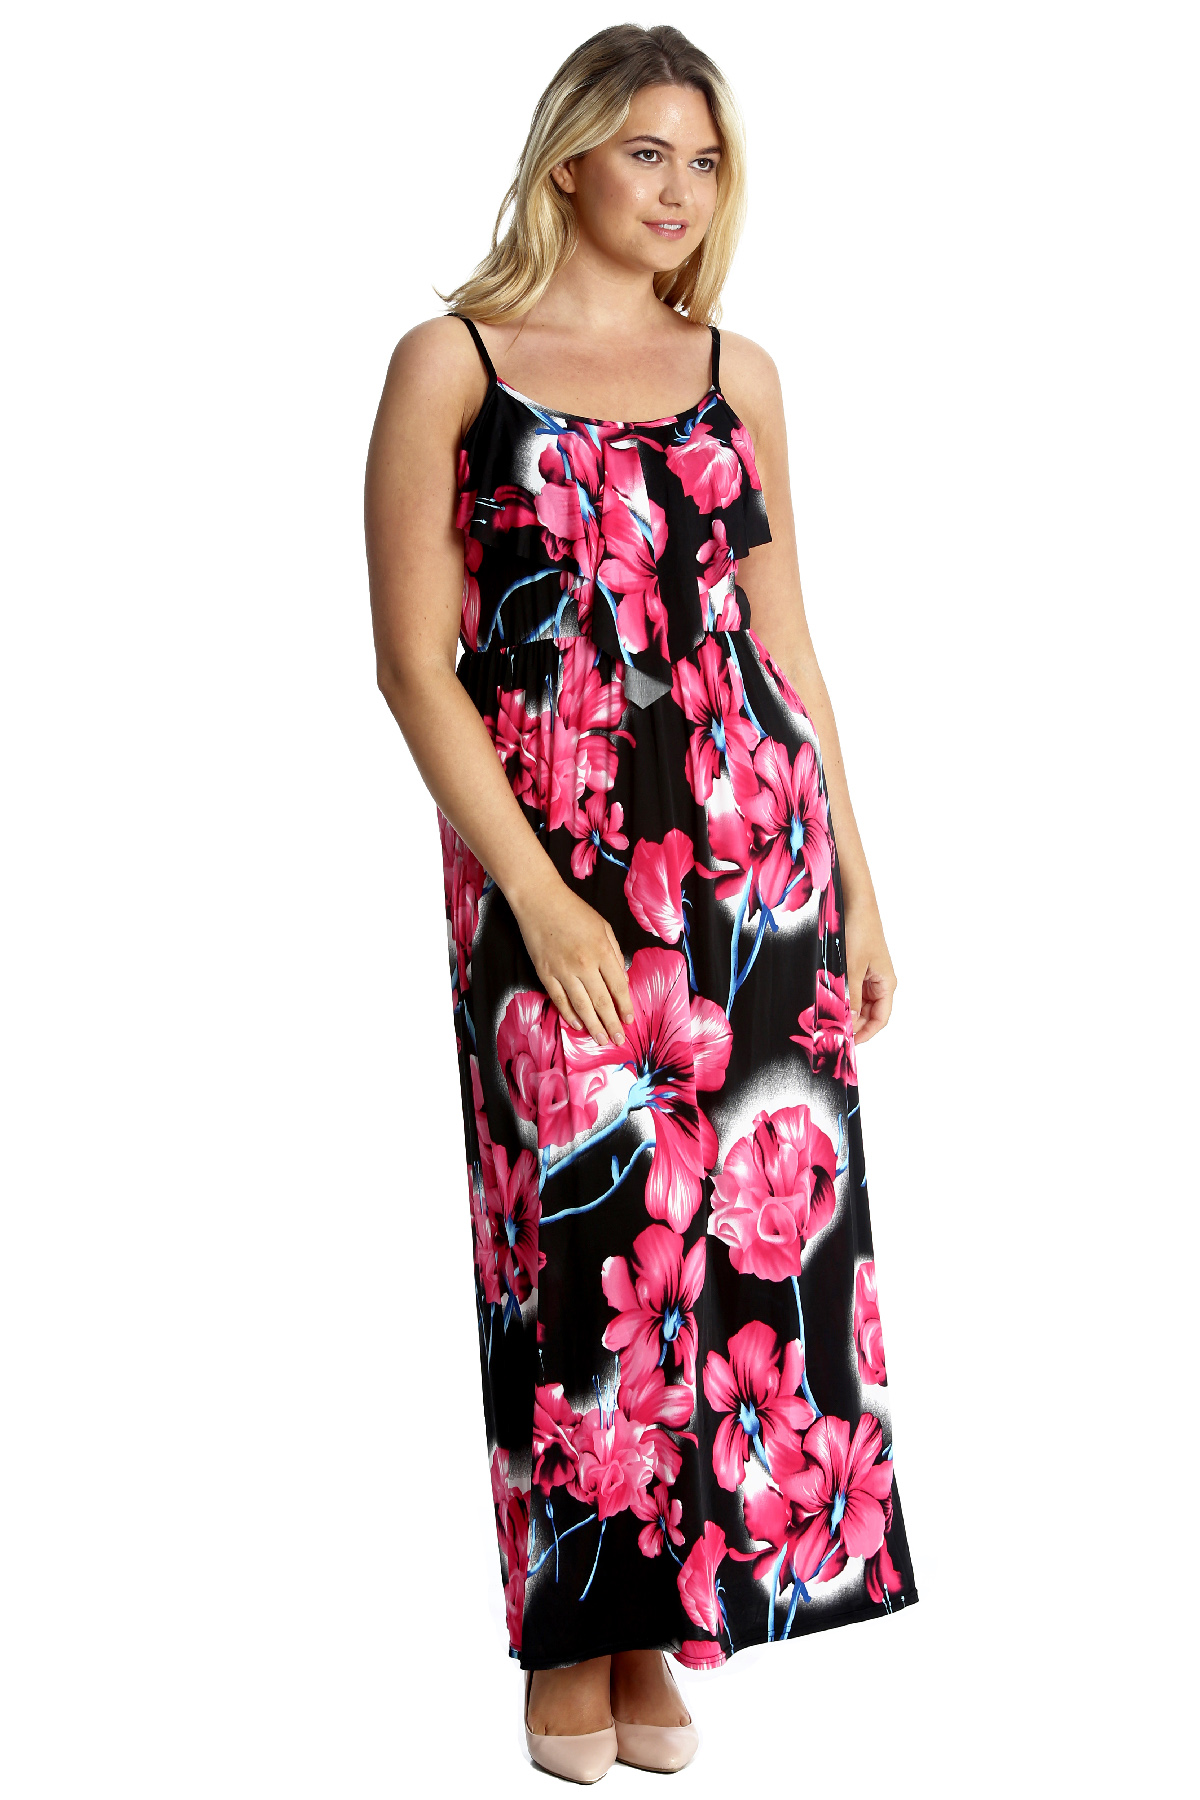 deb0080971 New Ladies Plus Size Maxi Dress Womens Tank Top Style Sleeveless ...